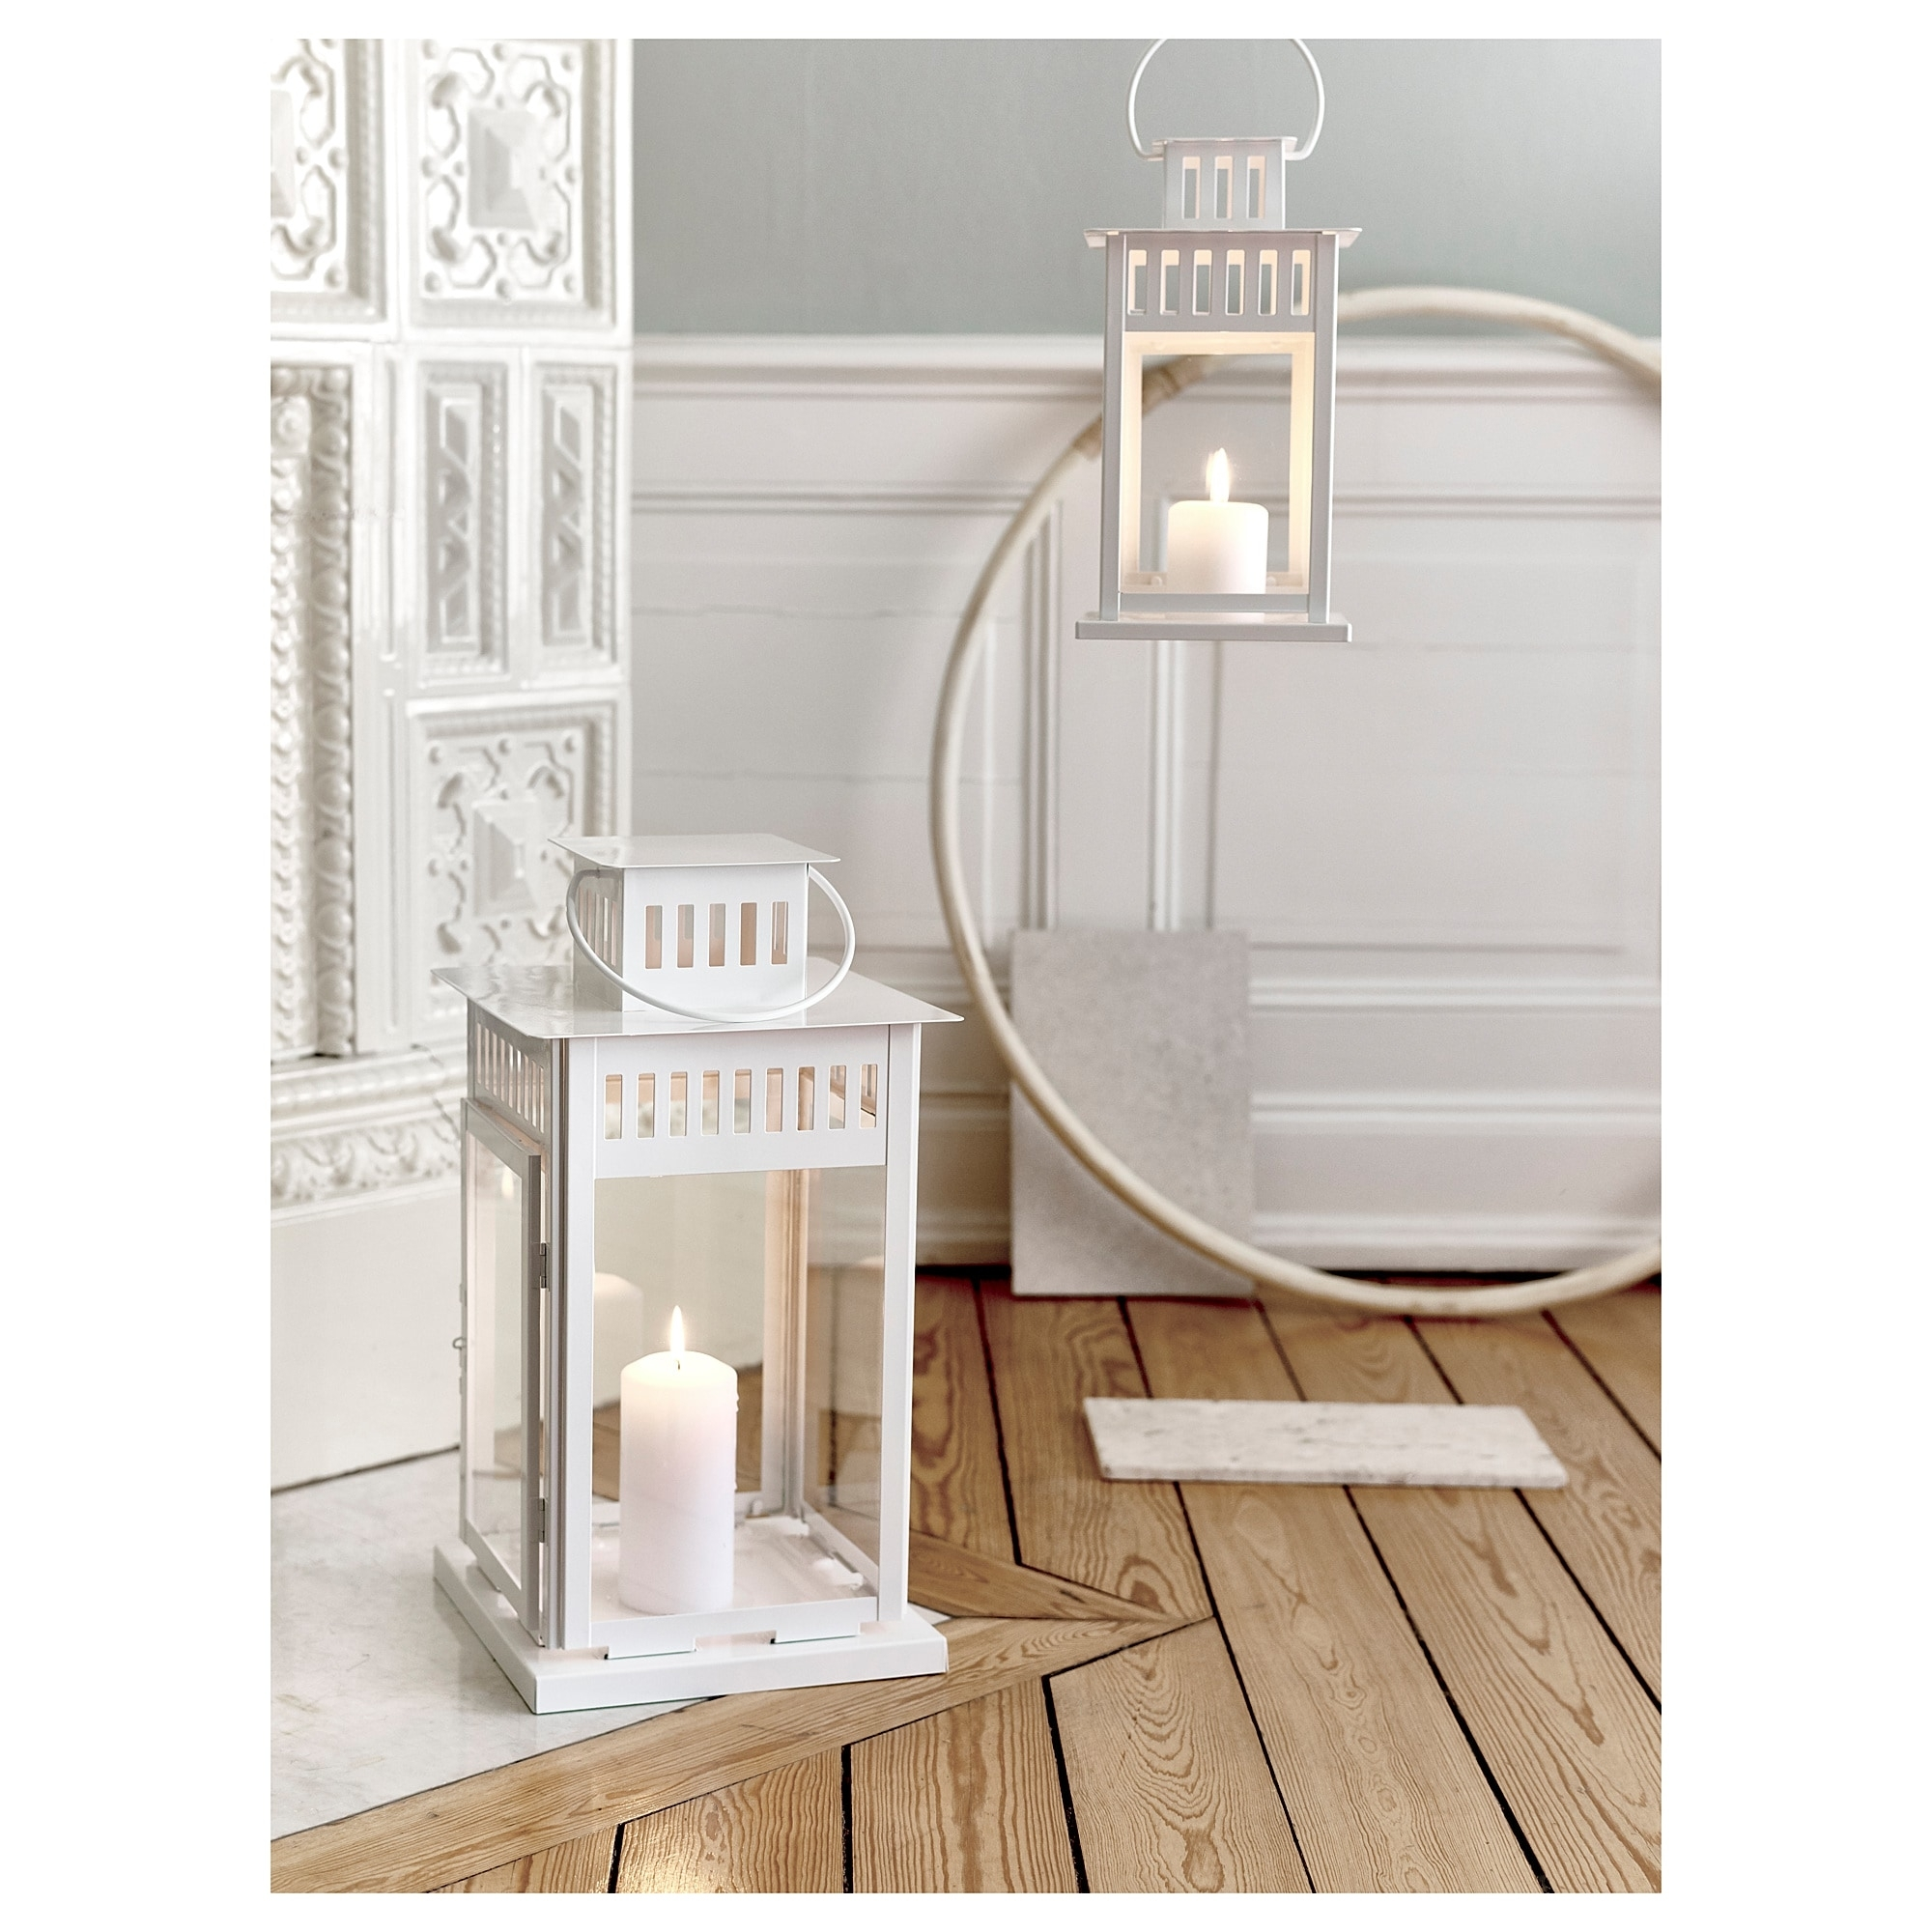 Borrby Lantern For Block Candle In/outdoor White 28 Cm - Ikea for Ikea Outdoor Lanterns (Image 5 of 20)